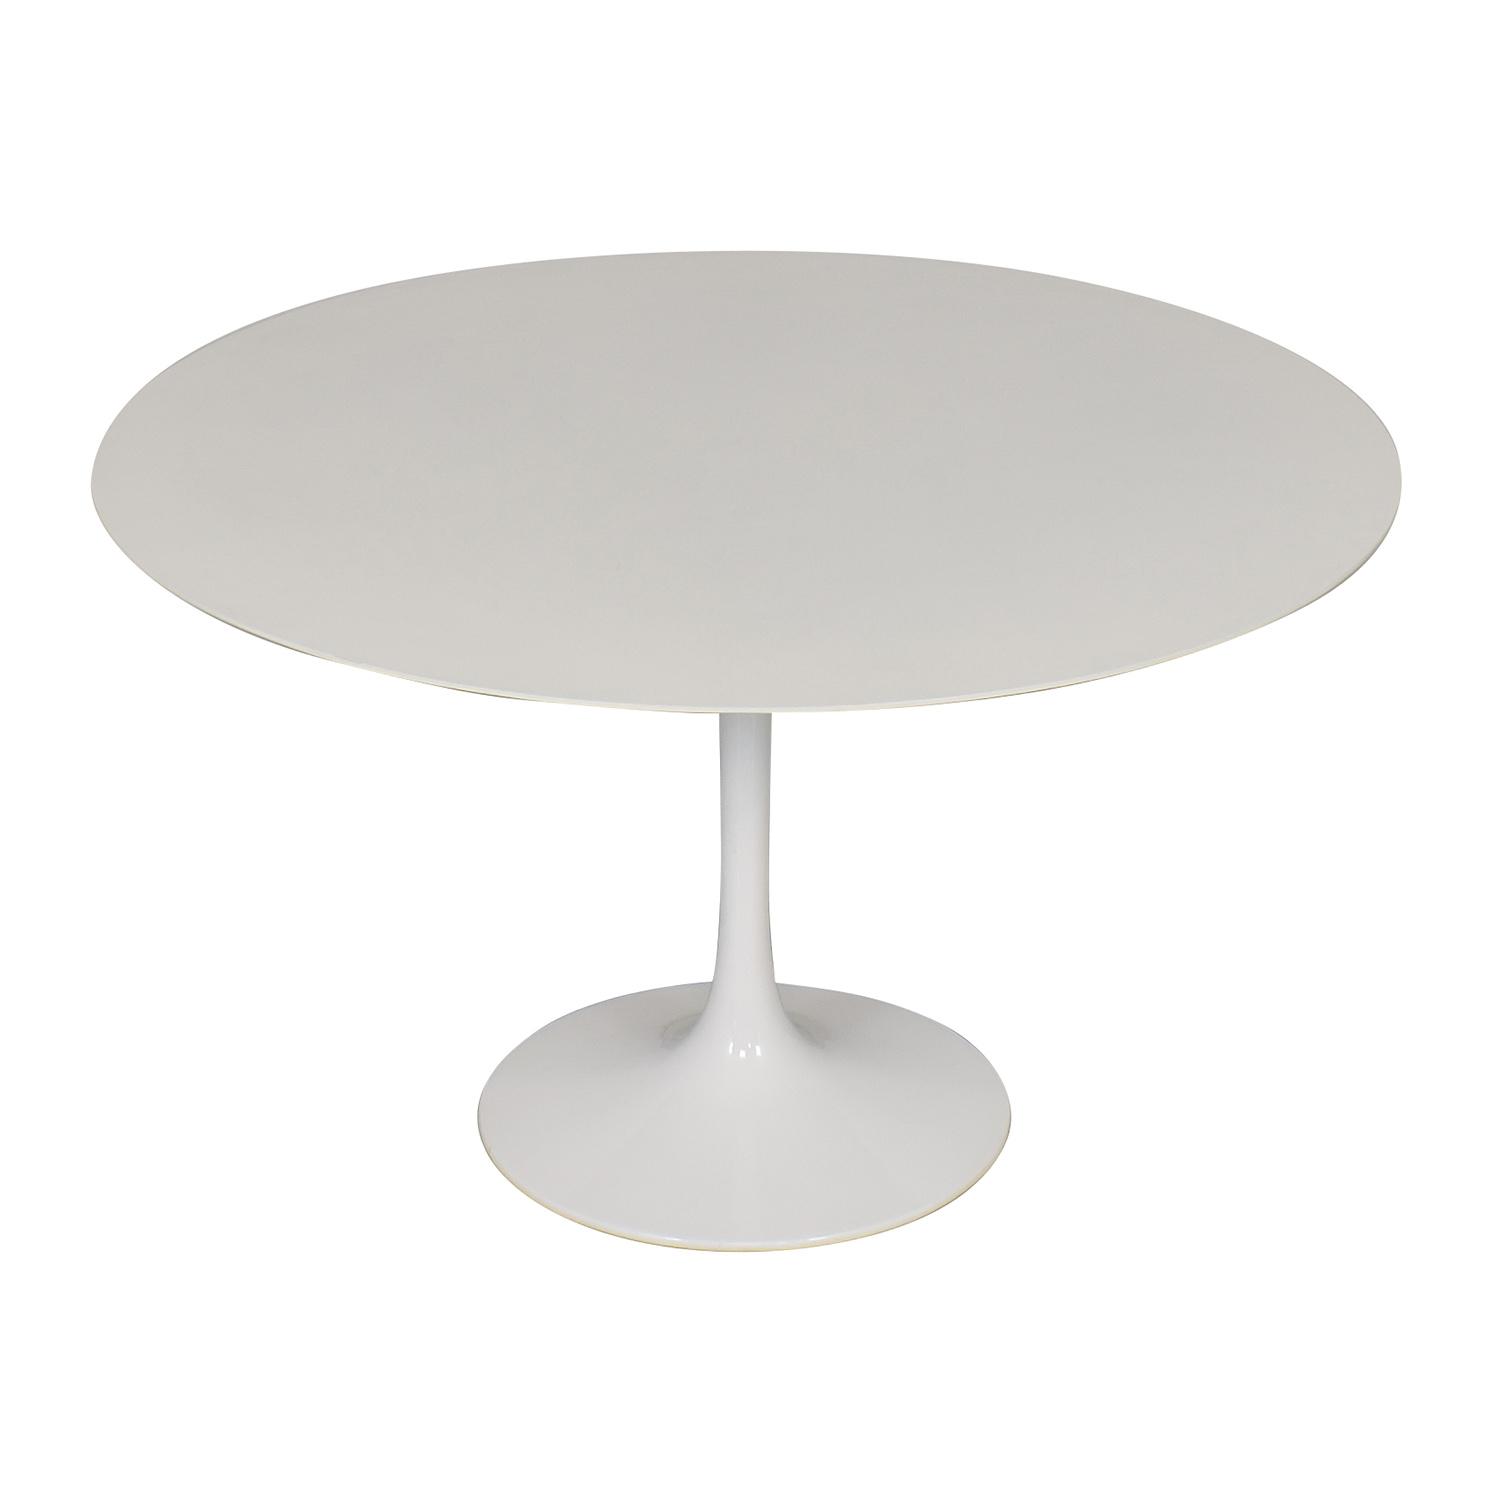 shop Corrigan Studio Corrigan Studio Angelica Dining Table online